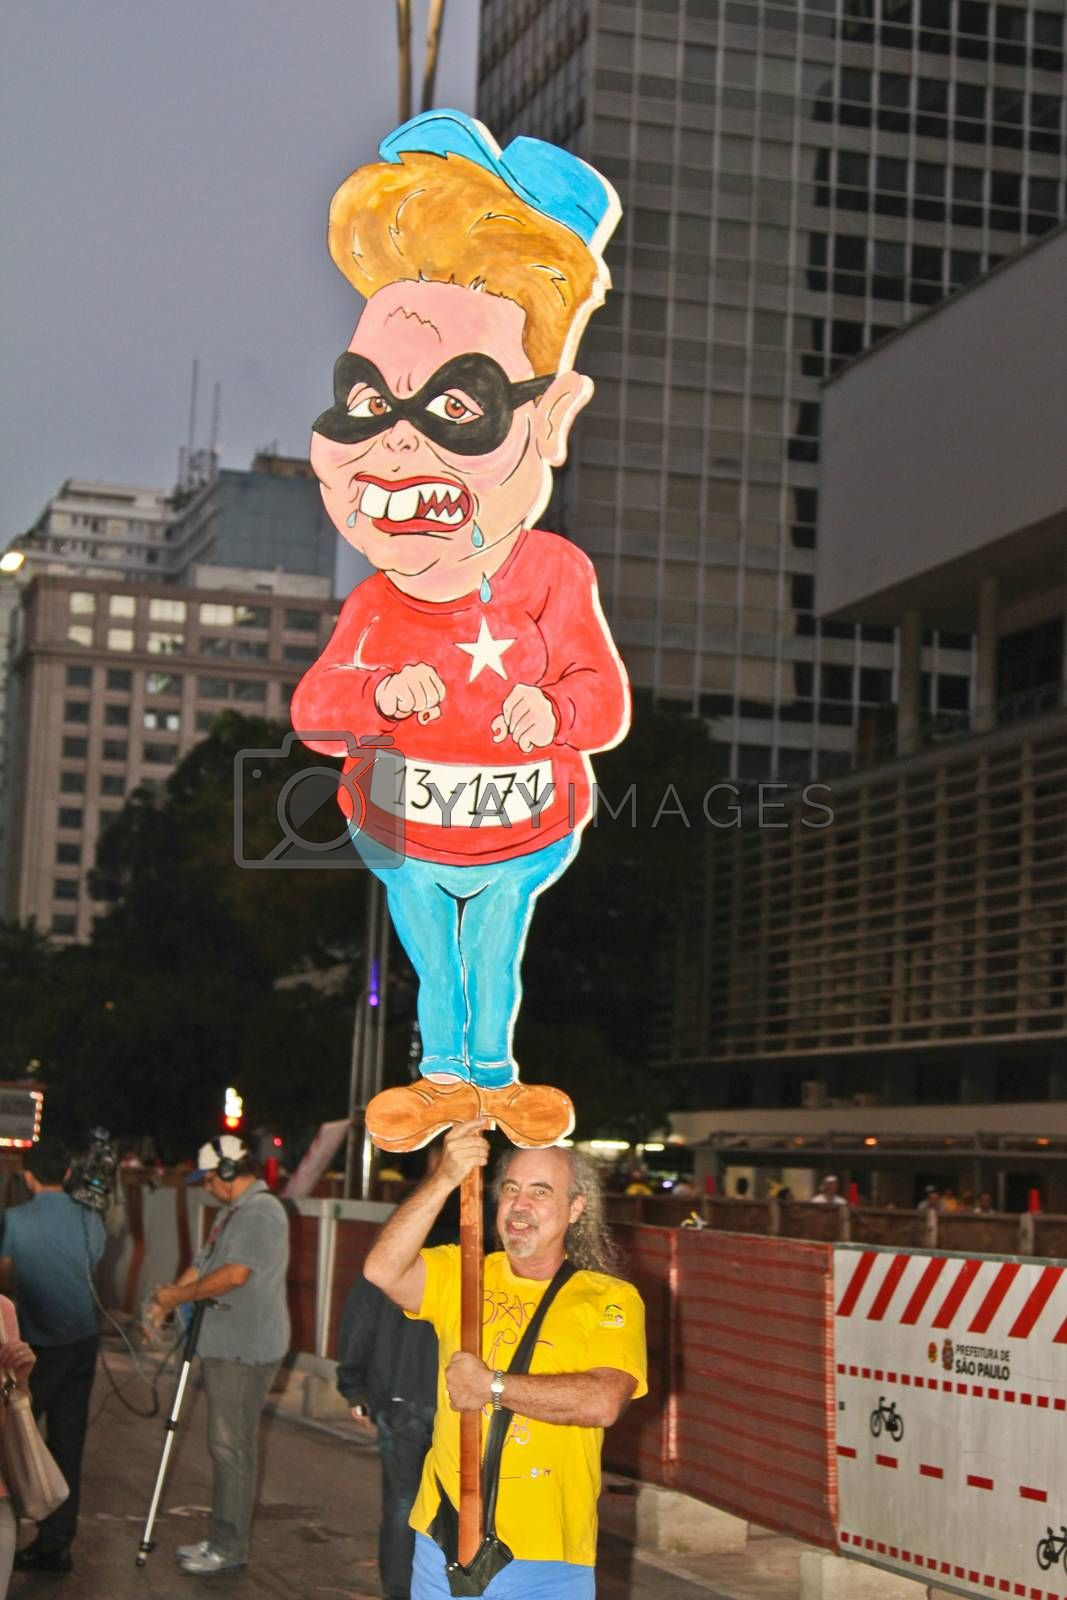 SAO PAULO, BRAZIL - APRIL 12, 2015: An unidentified man at protest against federal government corruption in Sao Paulo Brazil. Protesters call for the impeachment of President Dilma Rousseff.